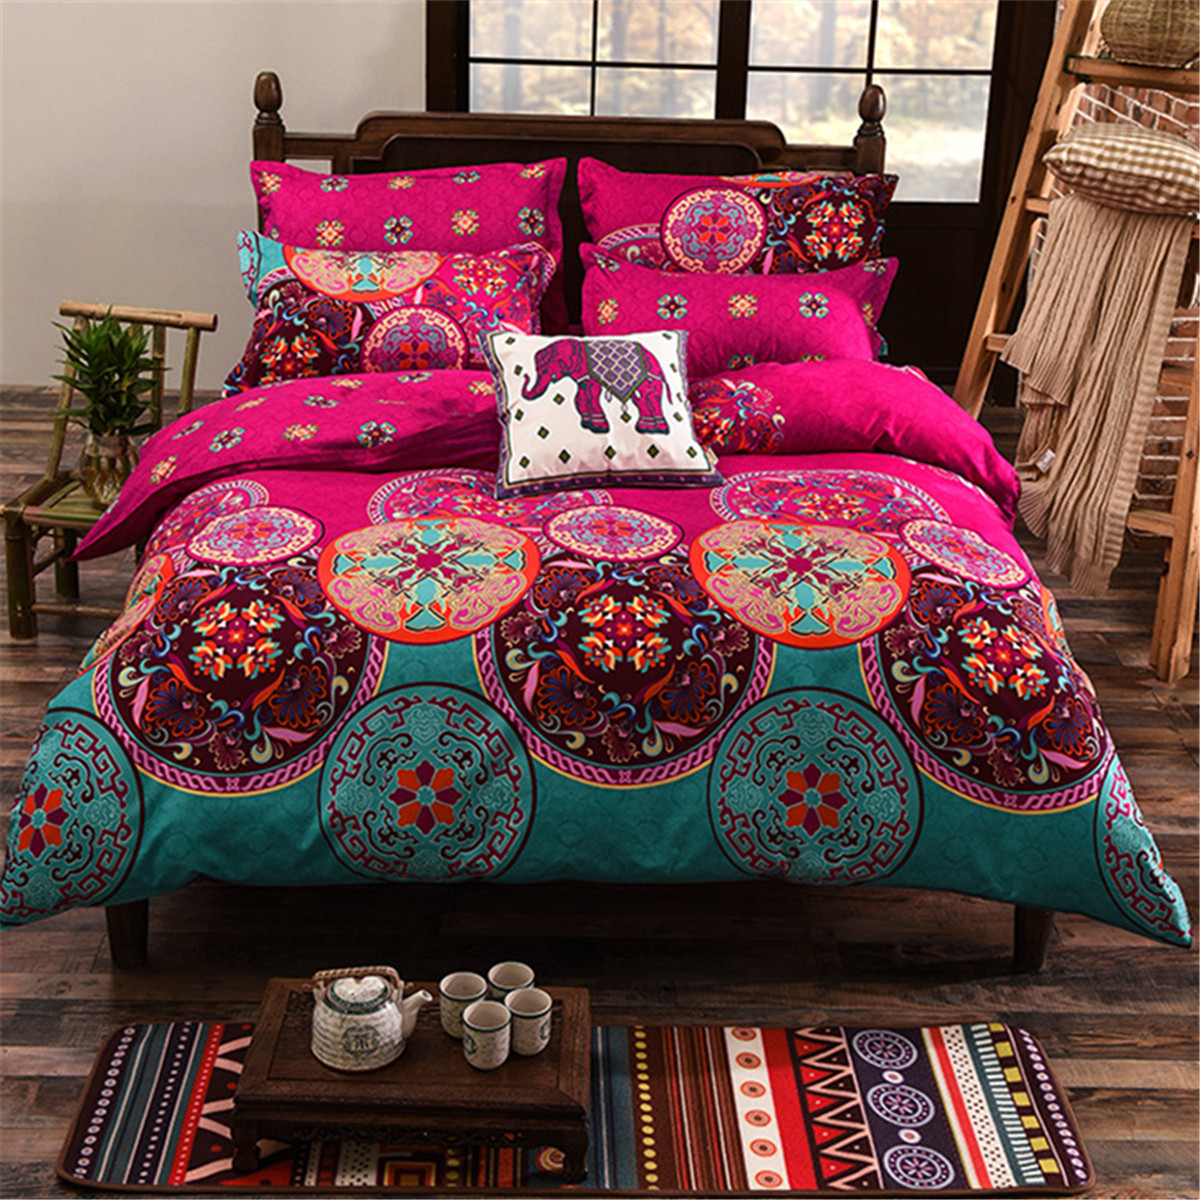 bedding sets walmart size queen cp bed com